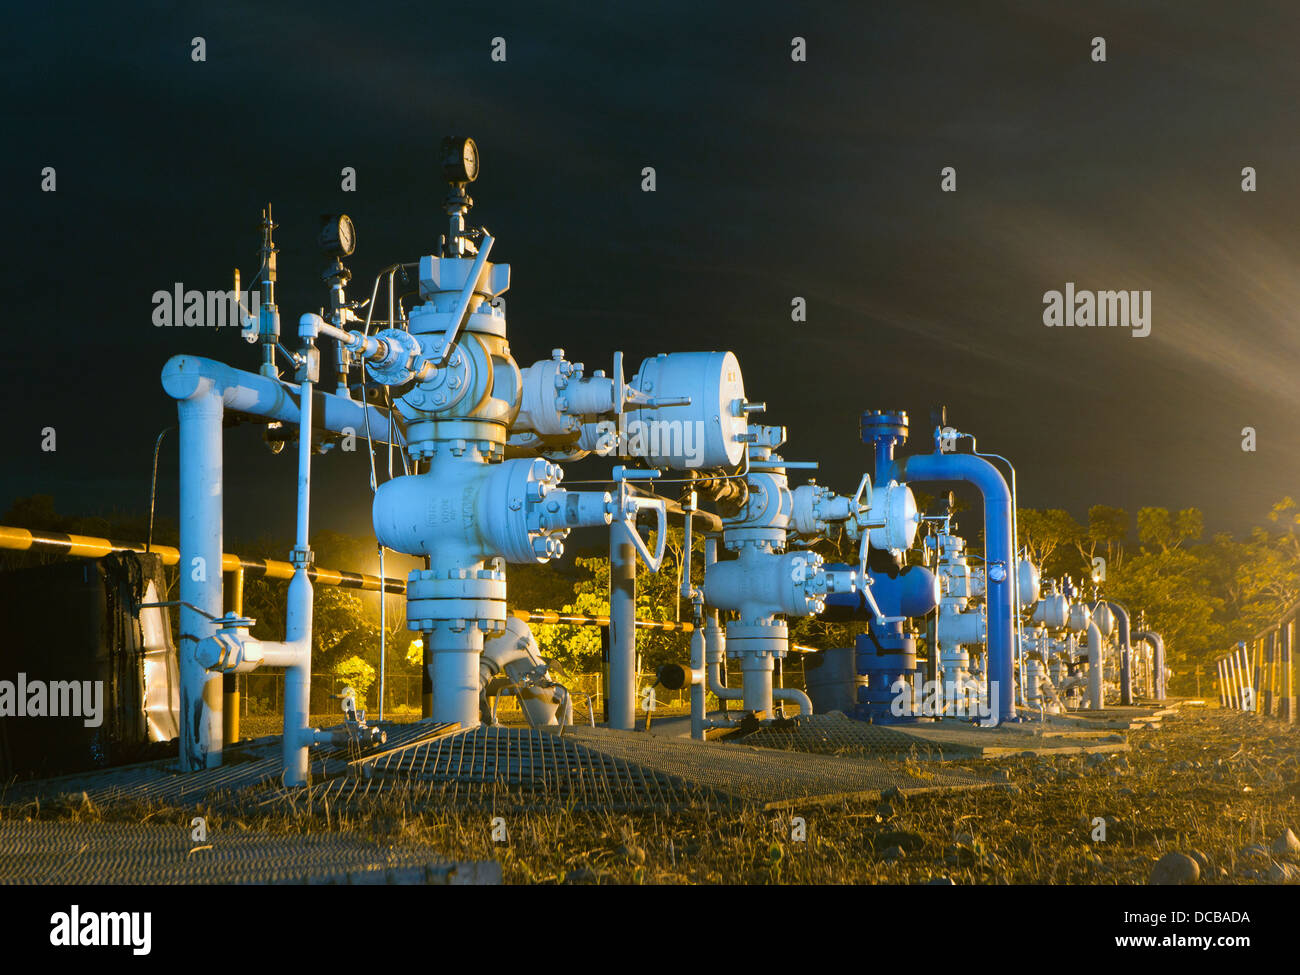 Row Of Christmas Tree Valves On An Oil Well Platform In The Stock